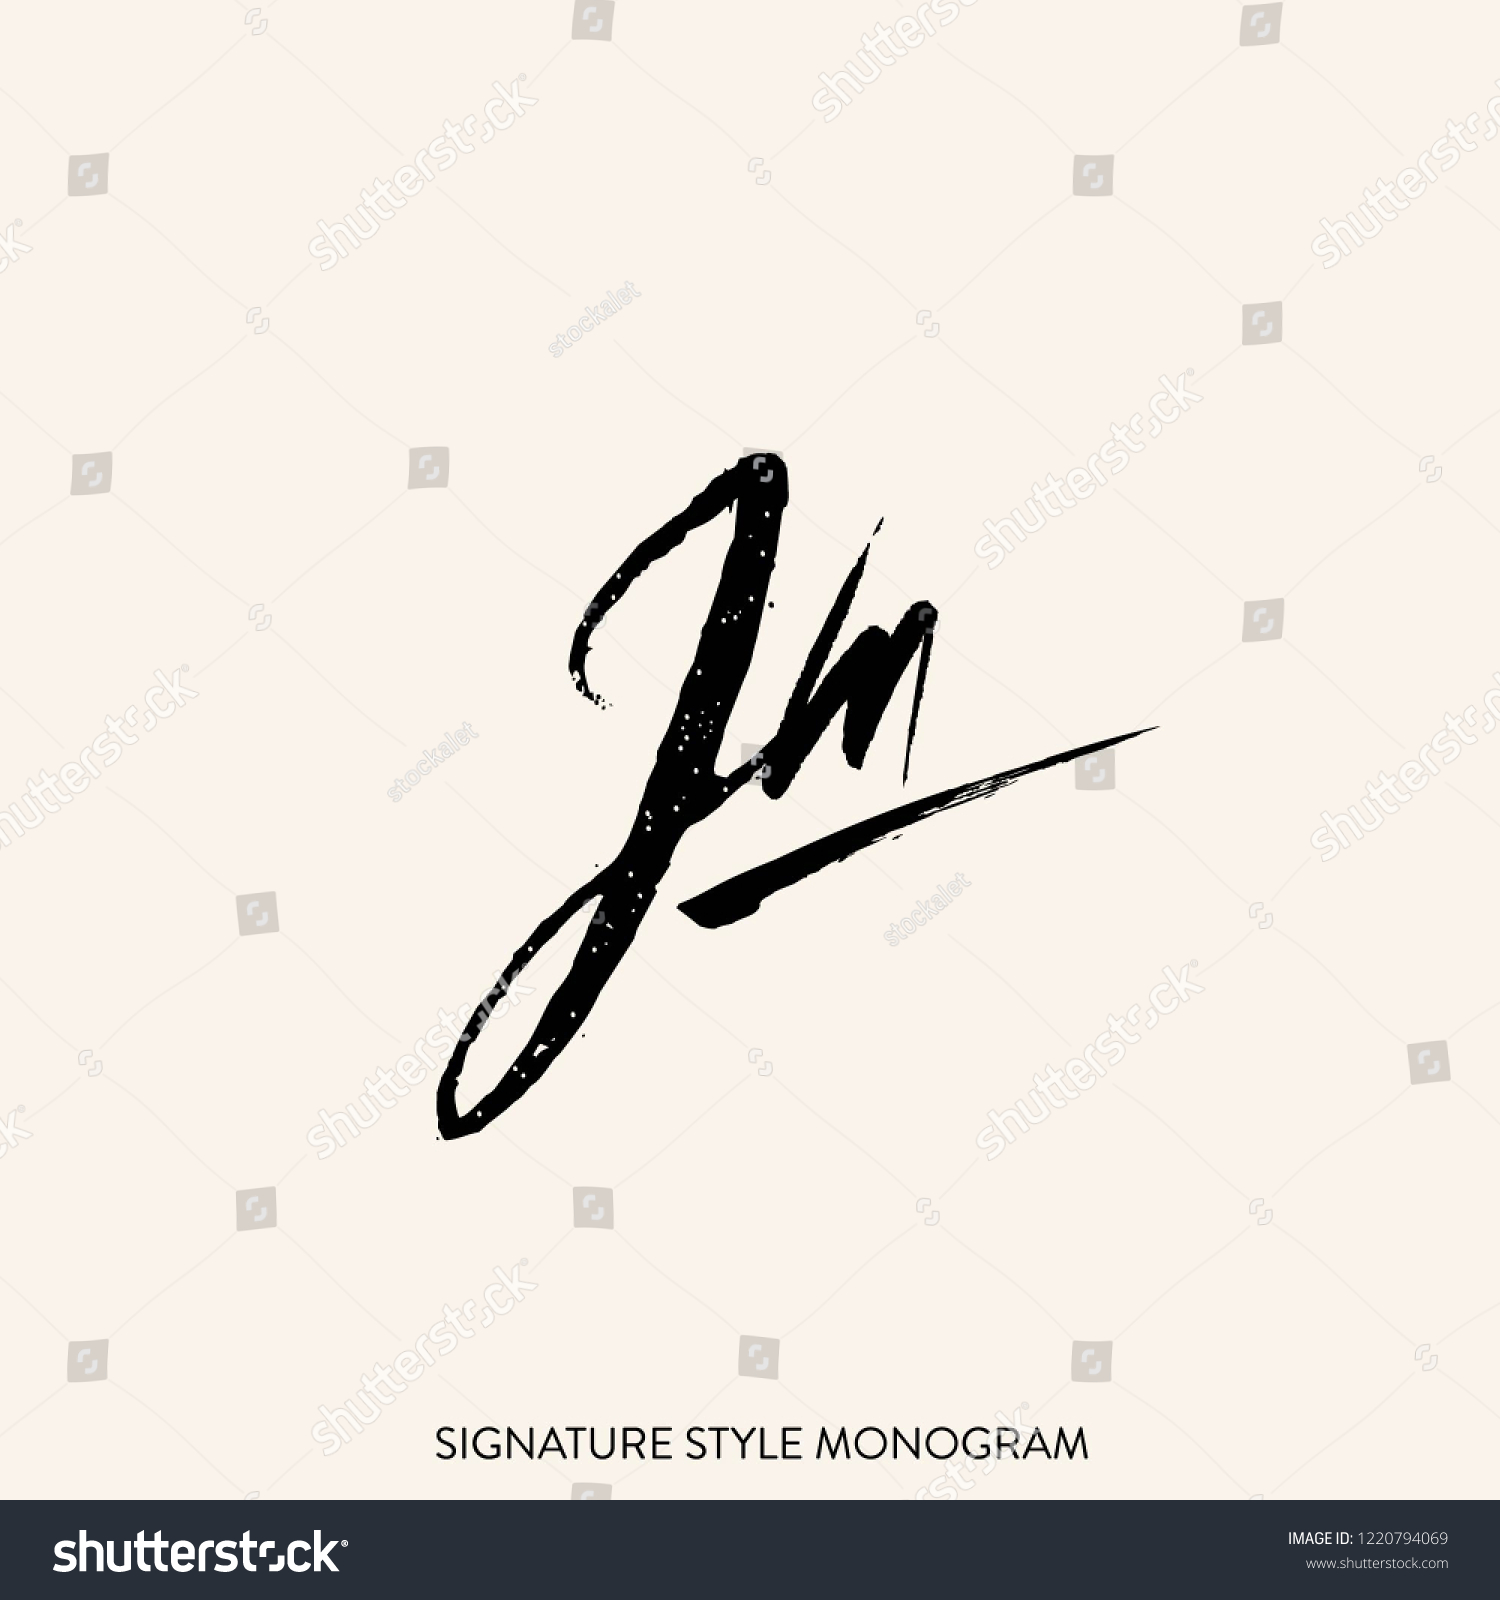 Signature style monogram with letter j and letter m typographic textured icon initial lettering